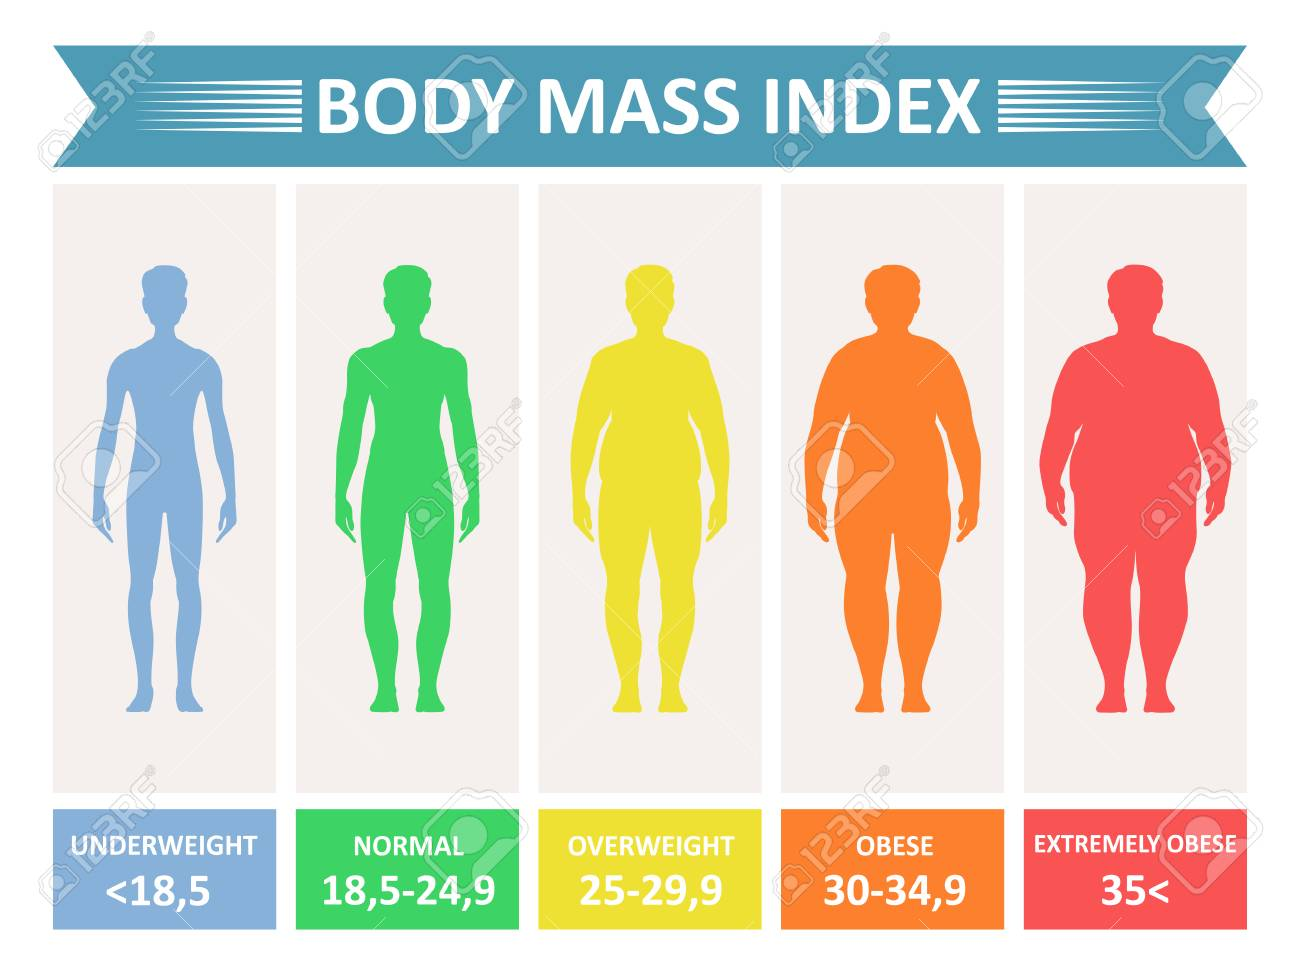 Index mass body. Rating chart of body fat based on height and weight in kilograms. Vector flat style cartoon illustration isolated on white background - 91097059